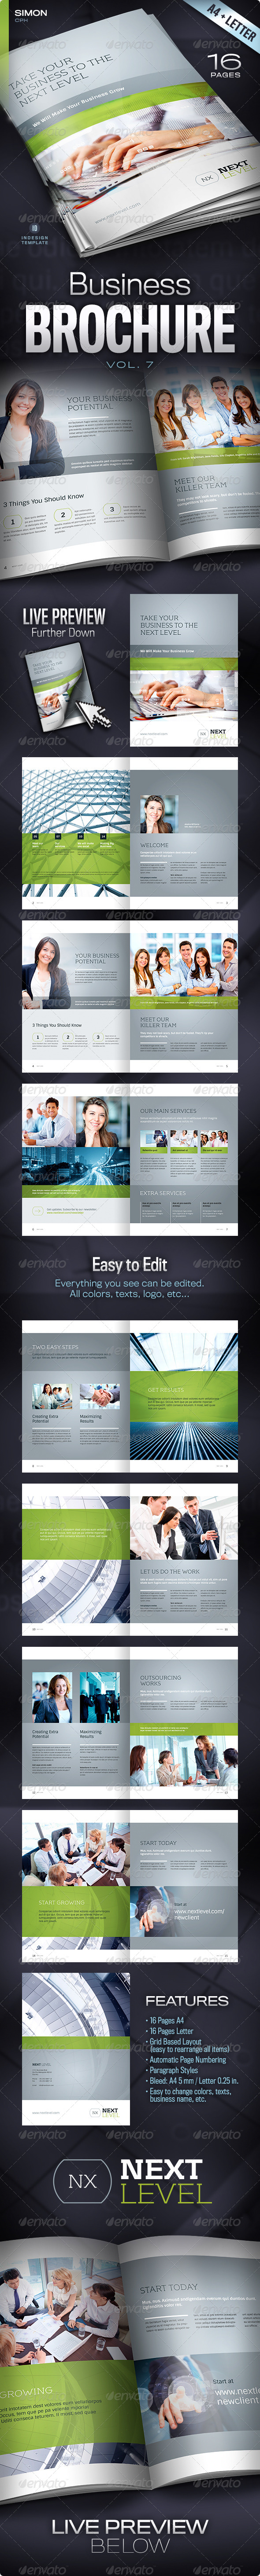 GraphicRiver Business Brochure Vol 7 4831688